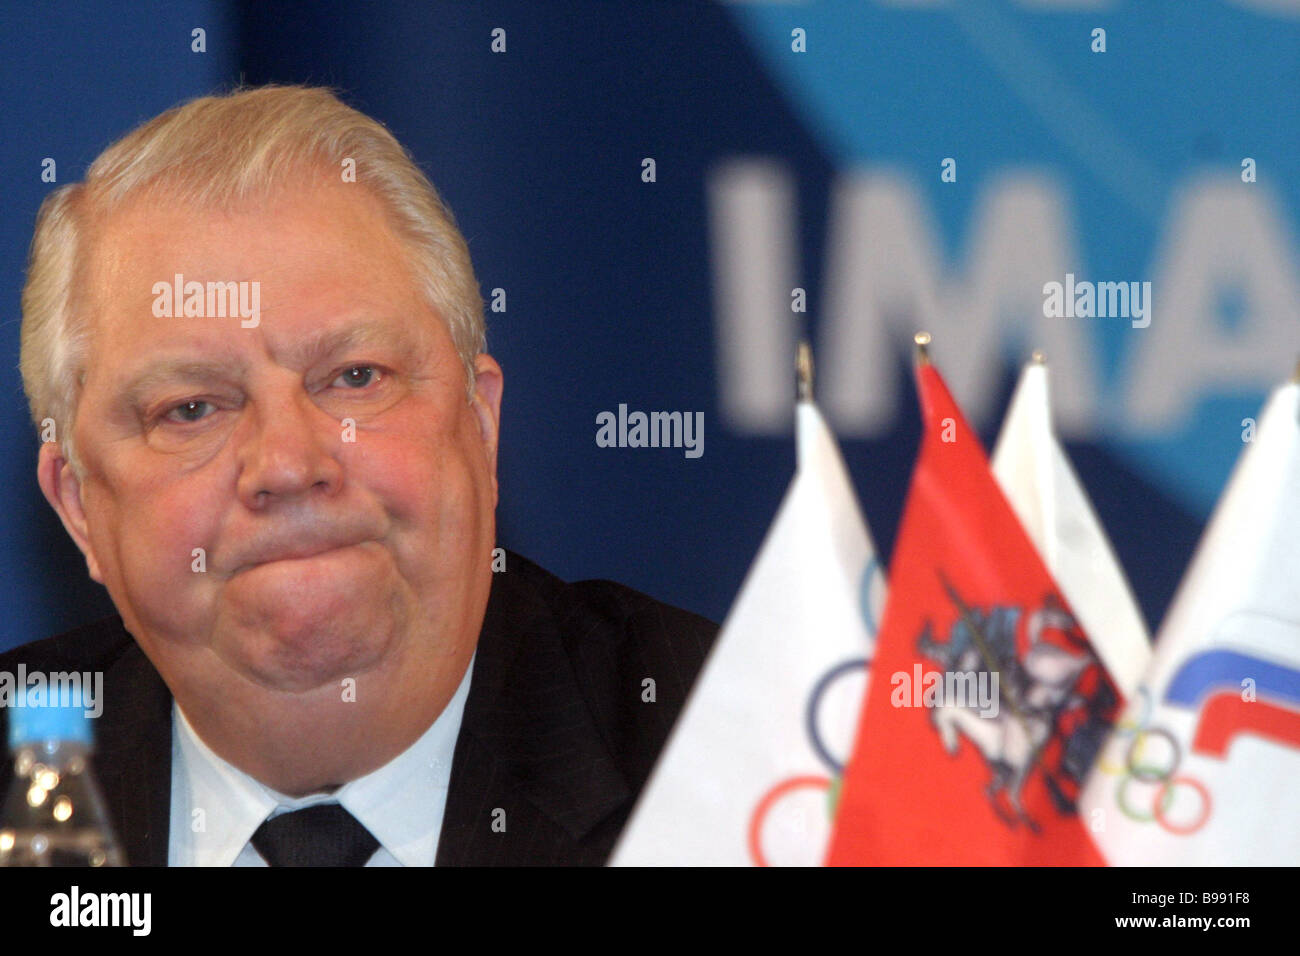 Vitaly Smirnov First Vice President of the International Olympic Committee speaking at press conference devoted - Stock Image